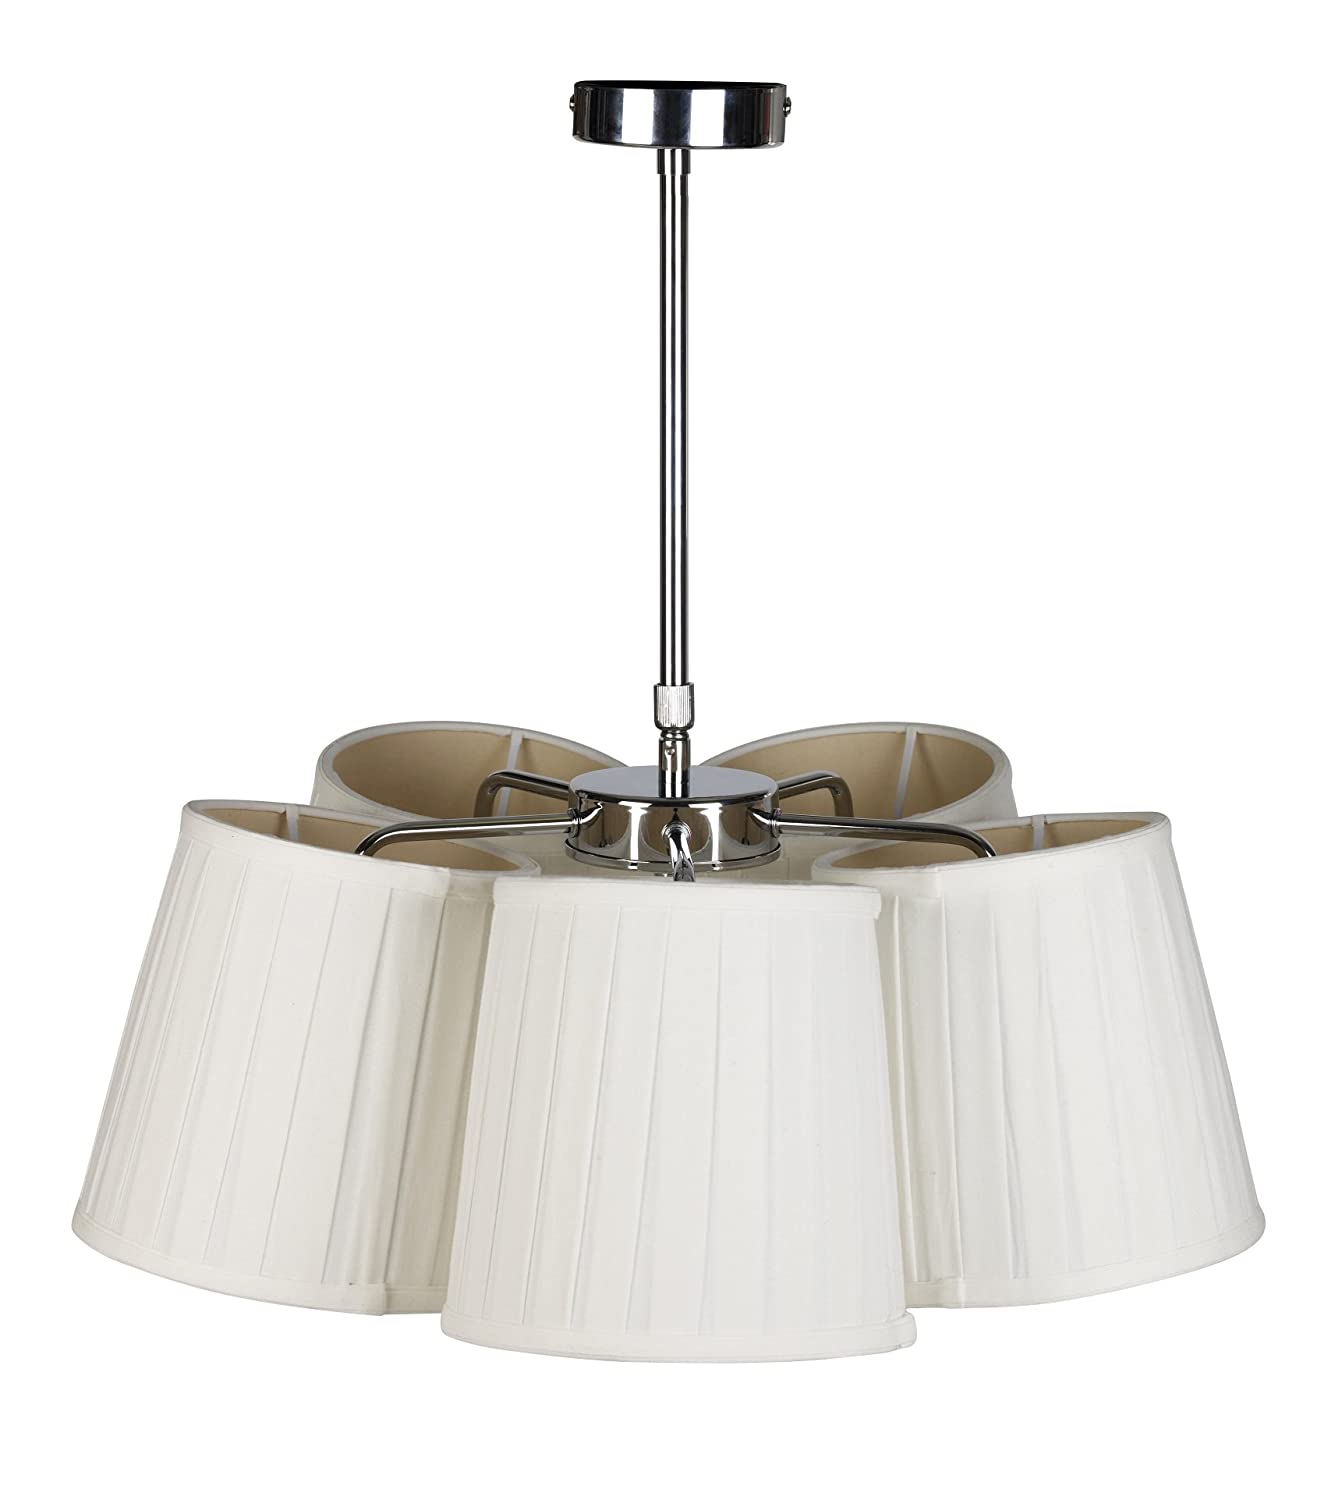 Laura ashley 5 arm ceiling light pendant with shades amazon laura ashley 5 arm ceiling light pendant with shades amazon diy tools aloadofball Images